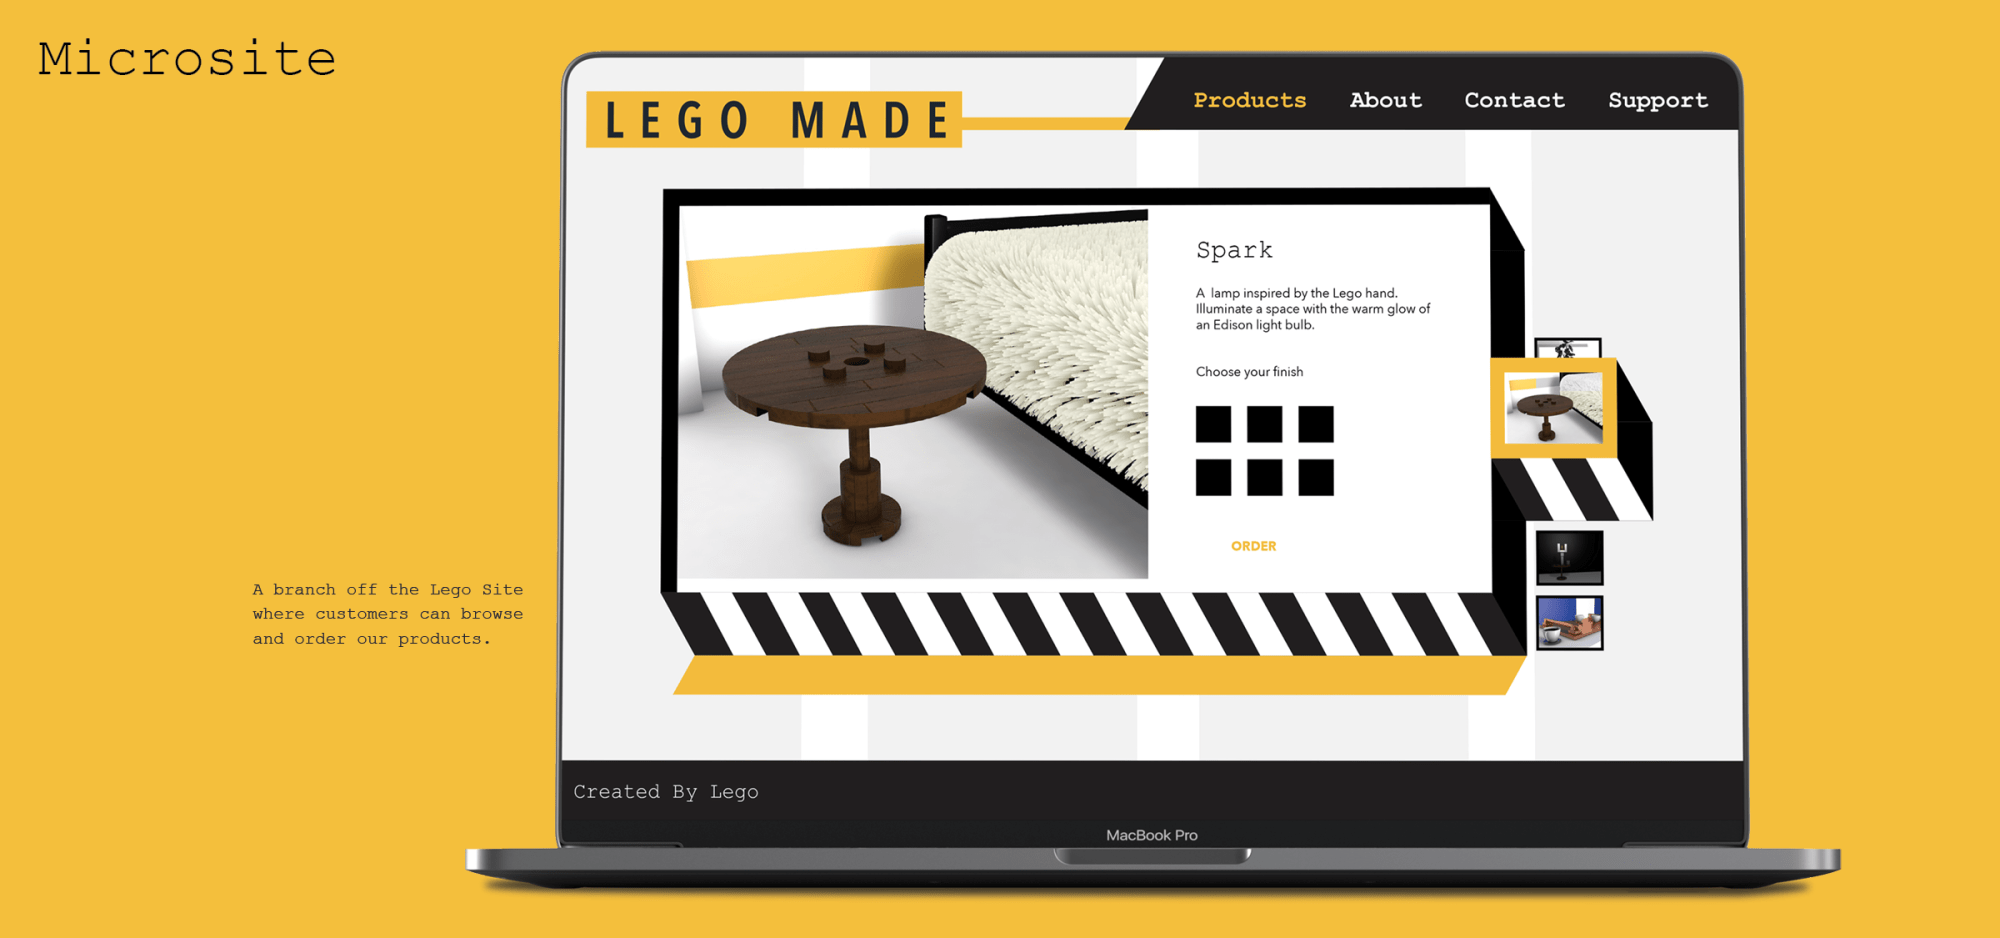 1-Legomade-microsite.png